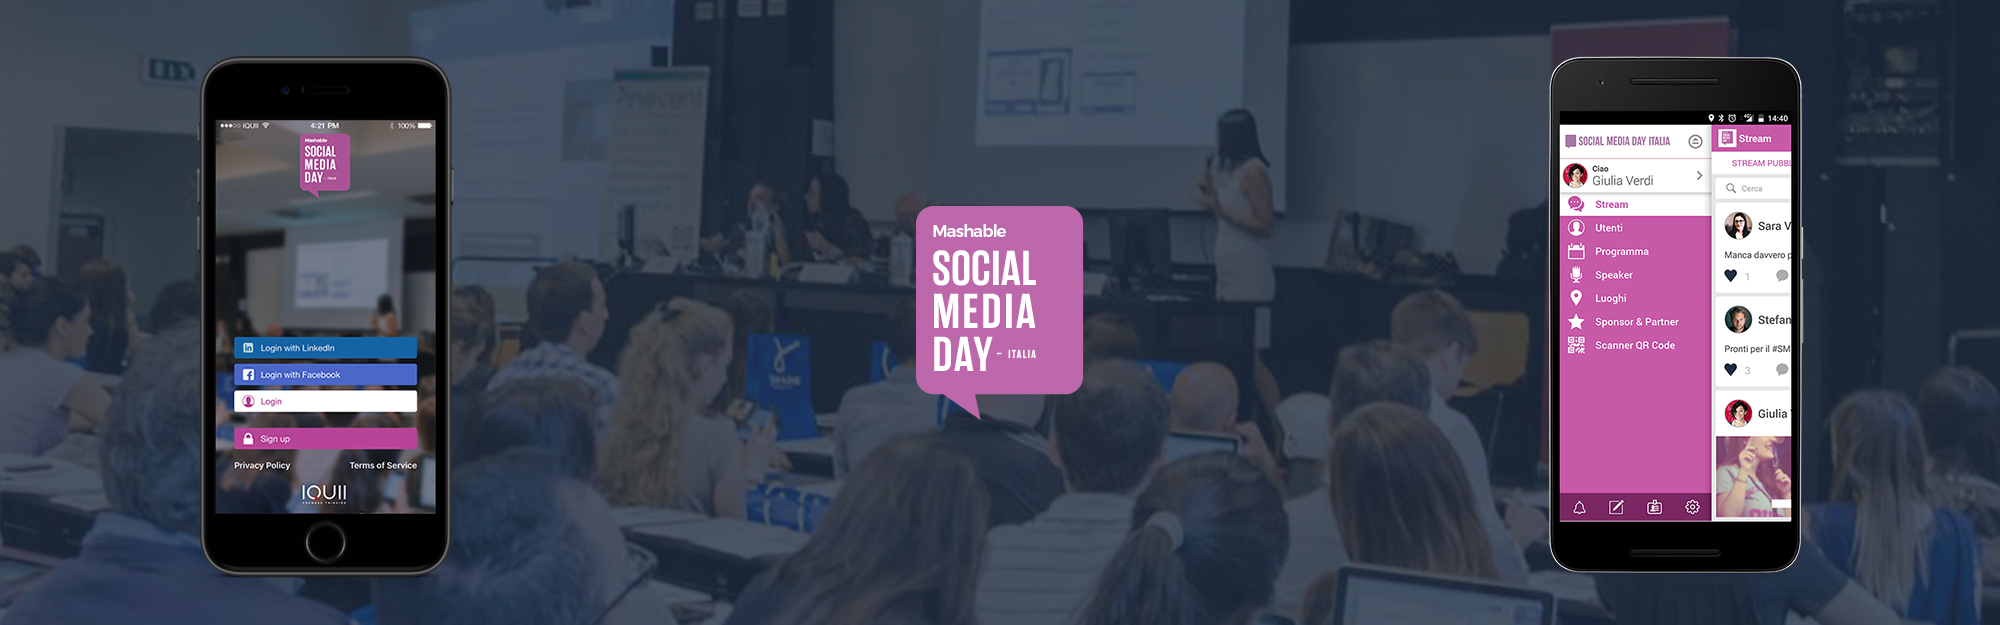 IQUII porta EventXP al Mashable Social Media Day Italia